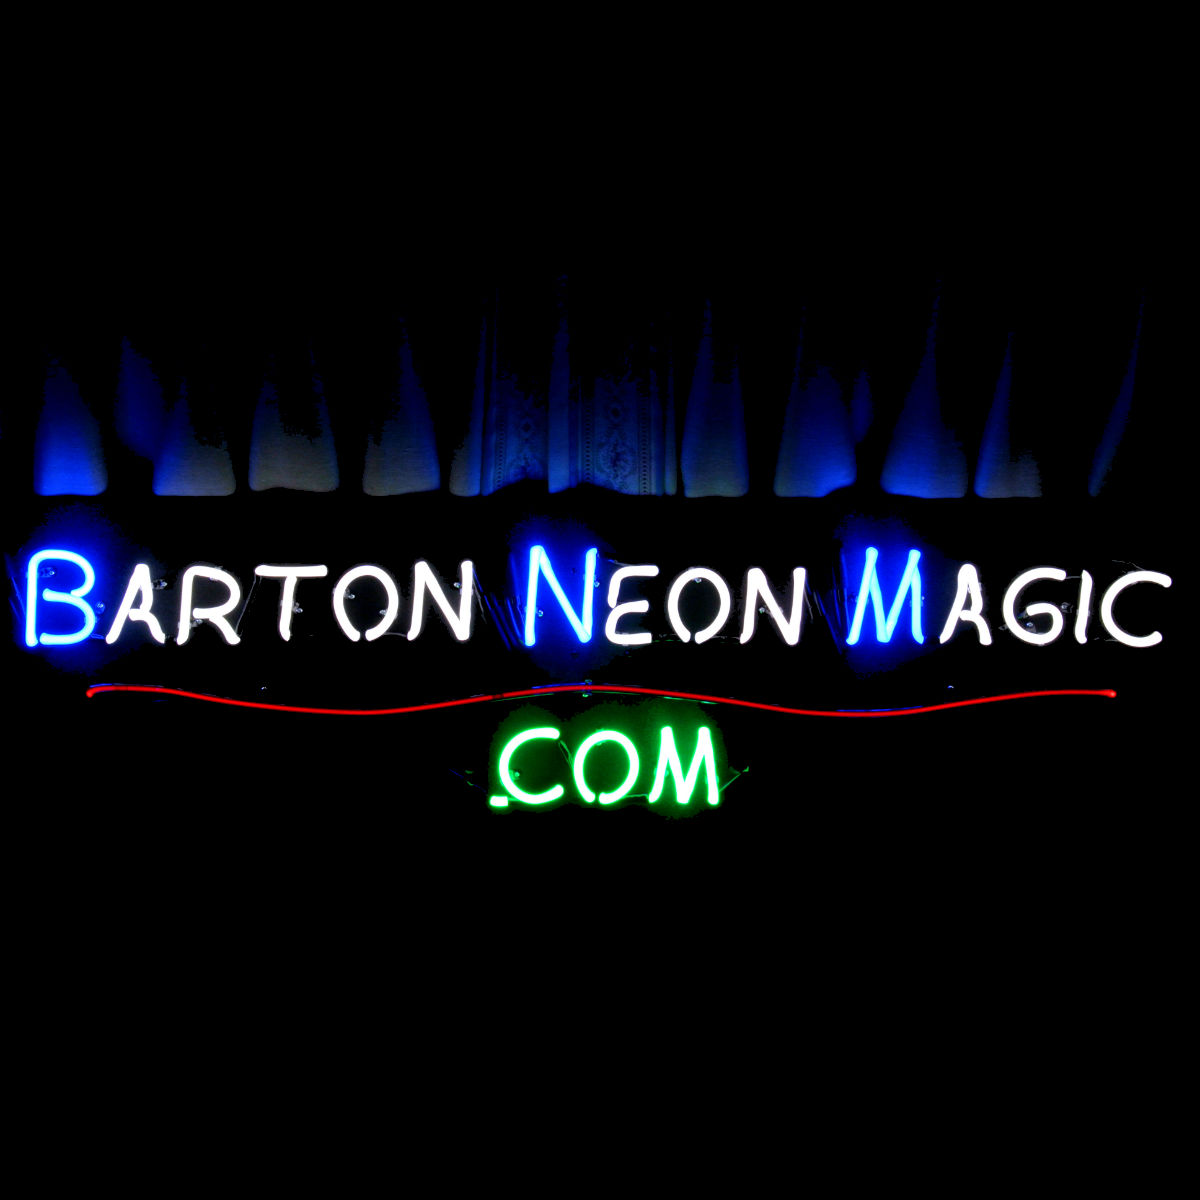 Stunning Custom Designer Neon Lighting by John Barton - famous USA Neon Glass Artist - BartonNeonMagic.com